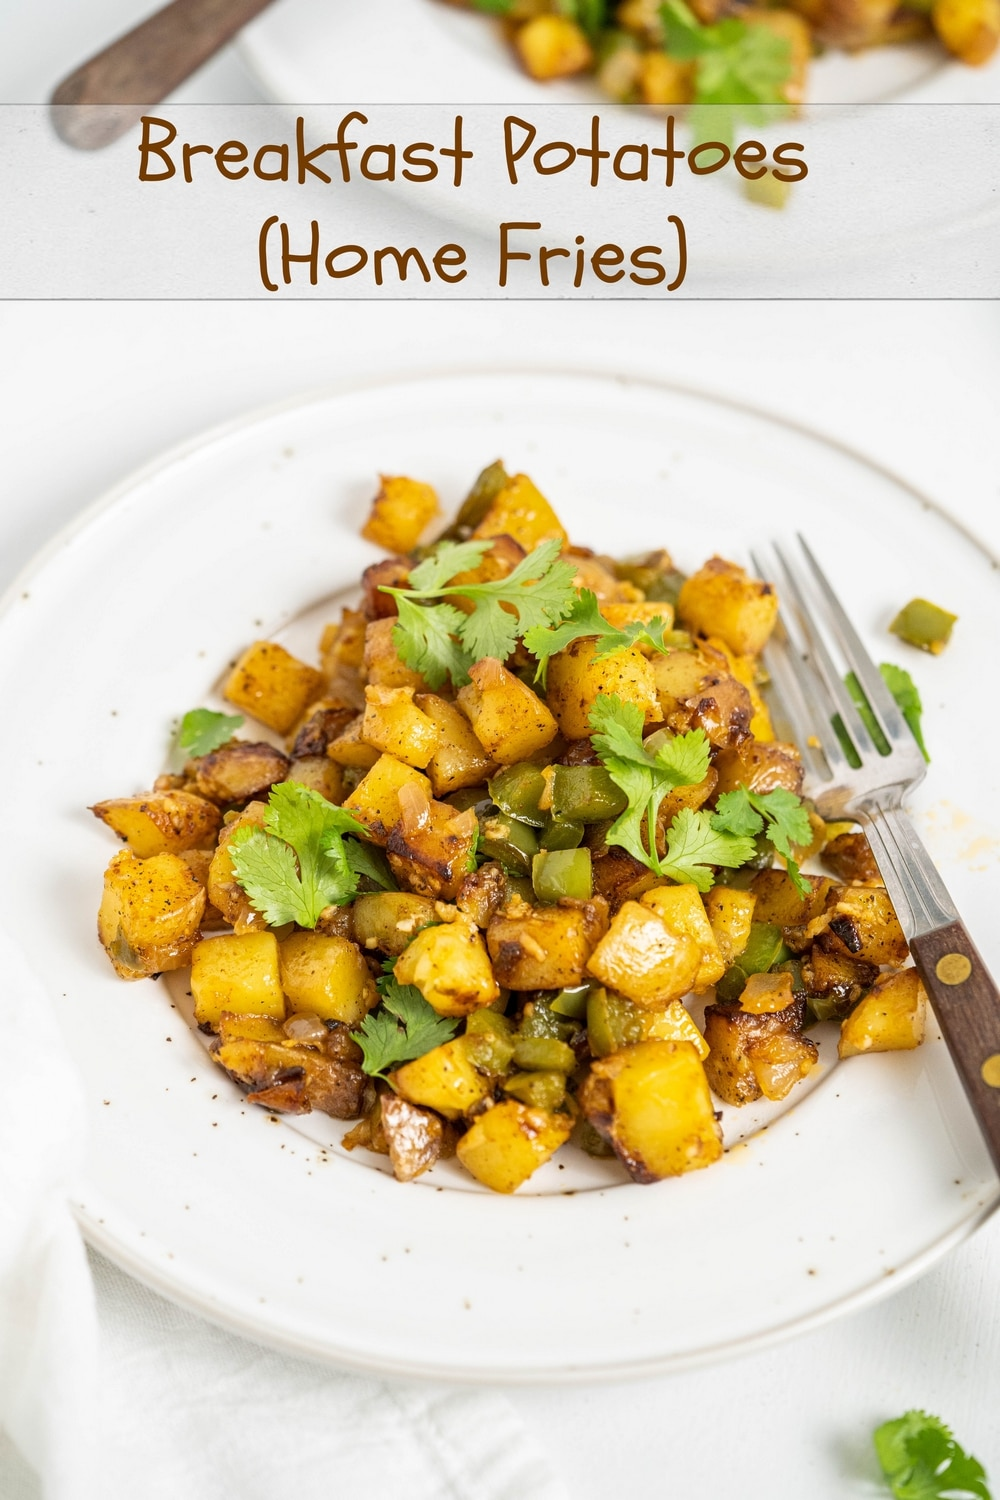 Home fries, a crunchy breakfast staple, with the right balance of a soft, creamy inside and crispy, crunchy outside. Breakfast potatoes are the perfect addition to any morning meal. via @cmpollak1